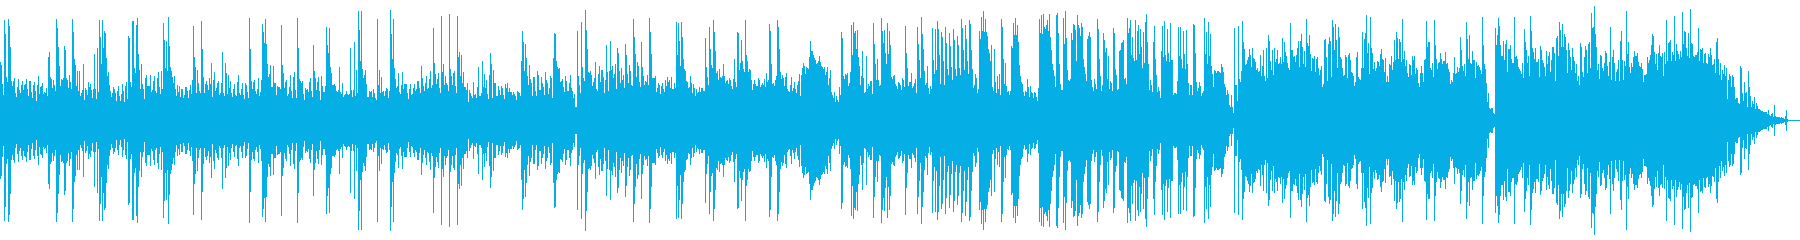 A sad but scary melody's reproduced waveform